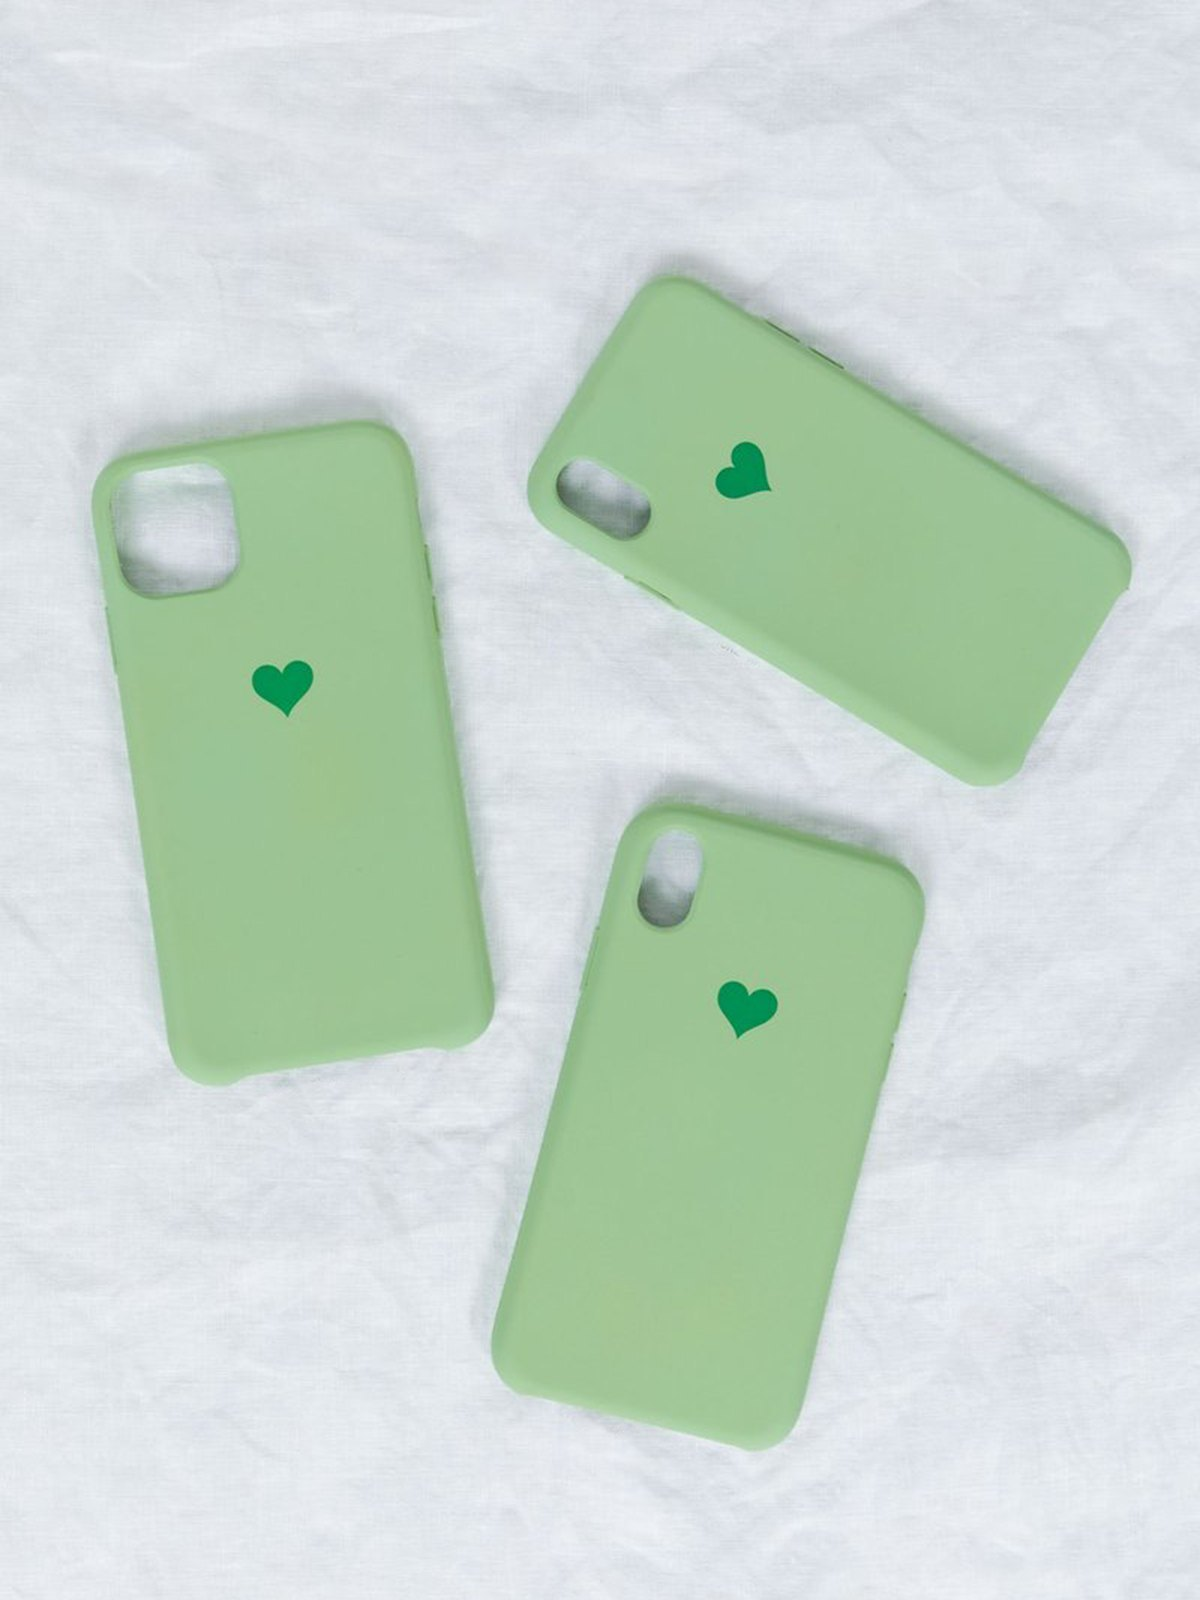 1Pcs Heart-shaped Iphone Cases - Green iPhone 11Pro Max